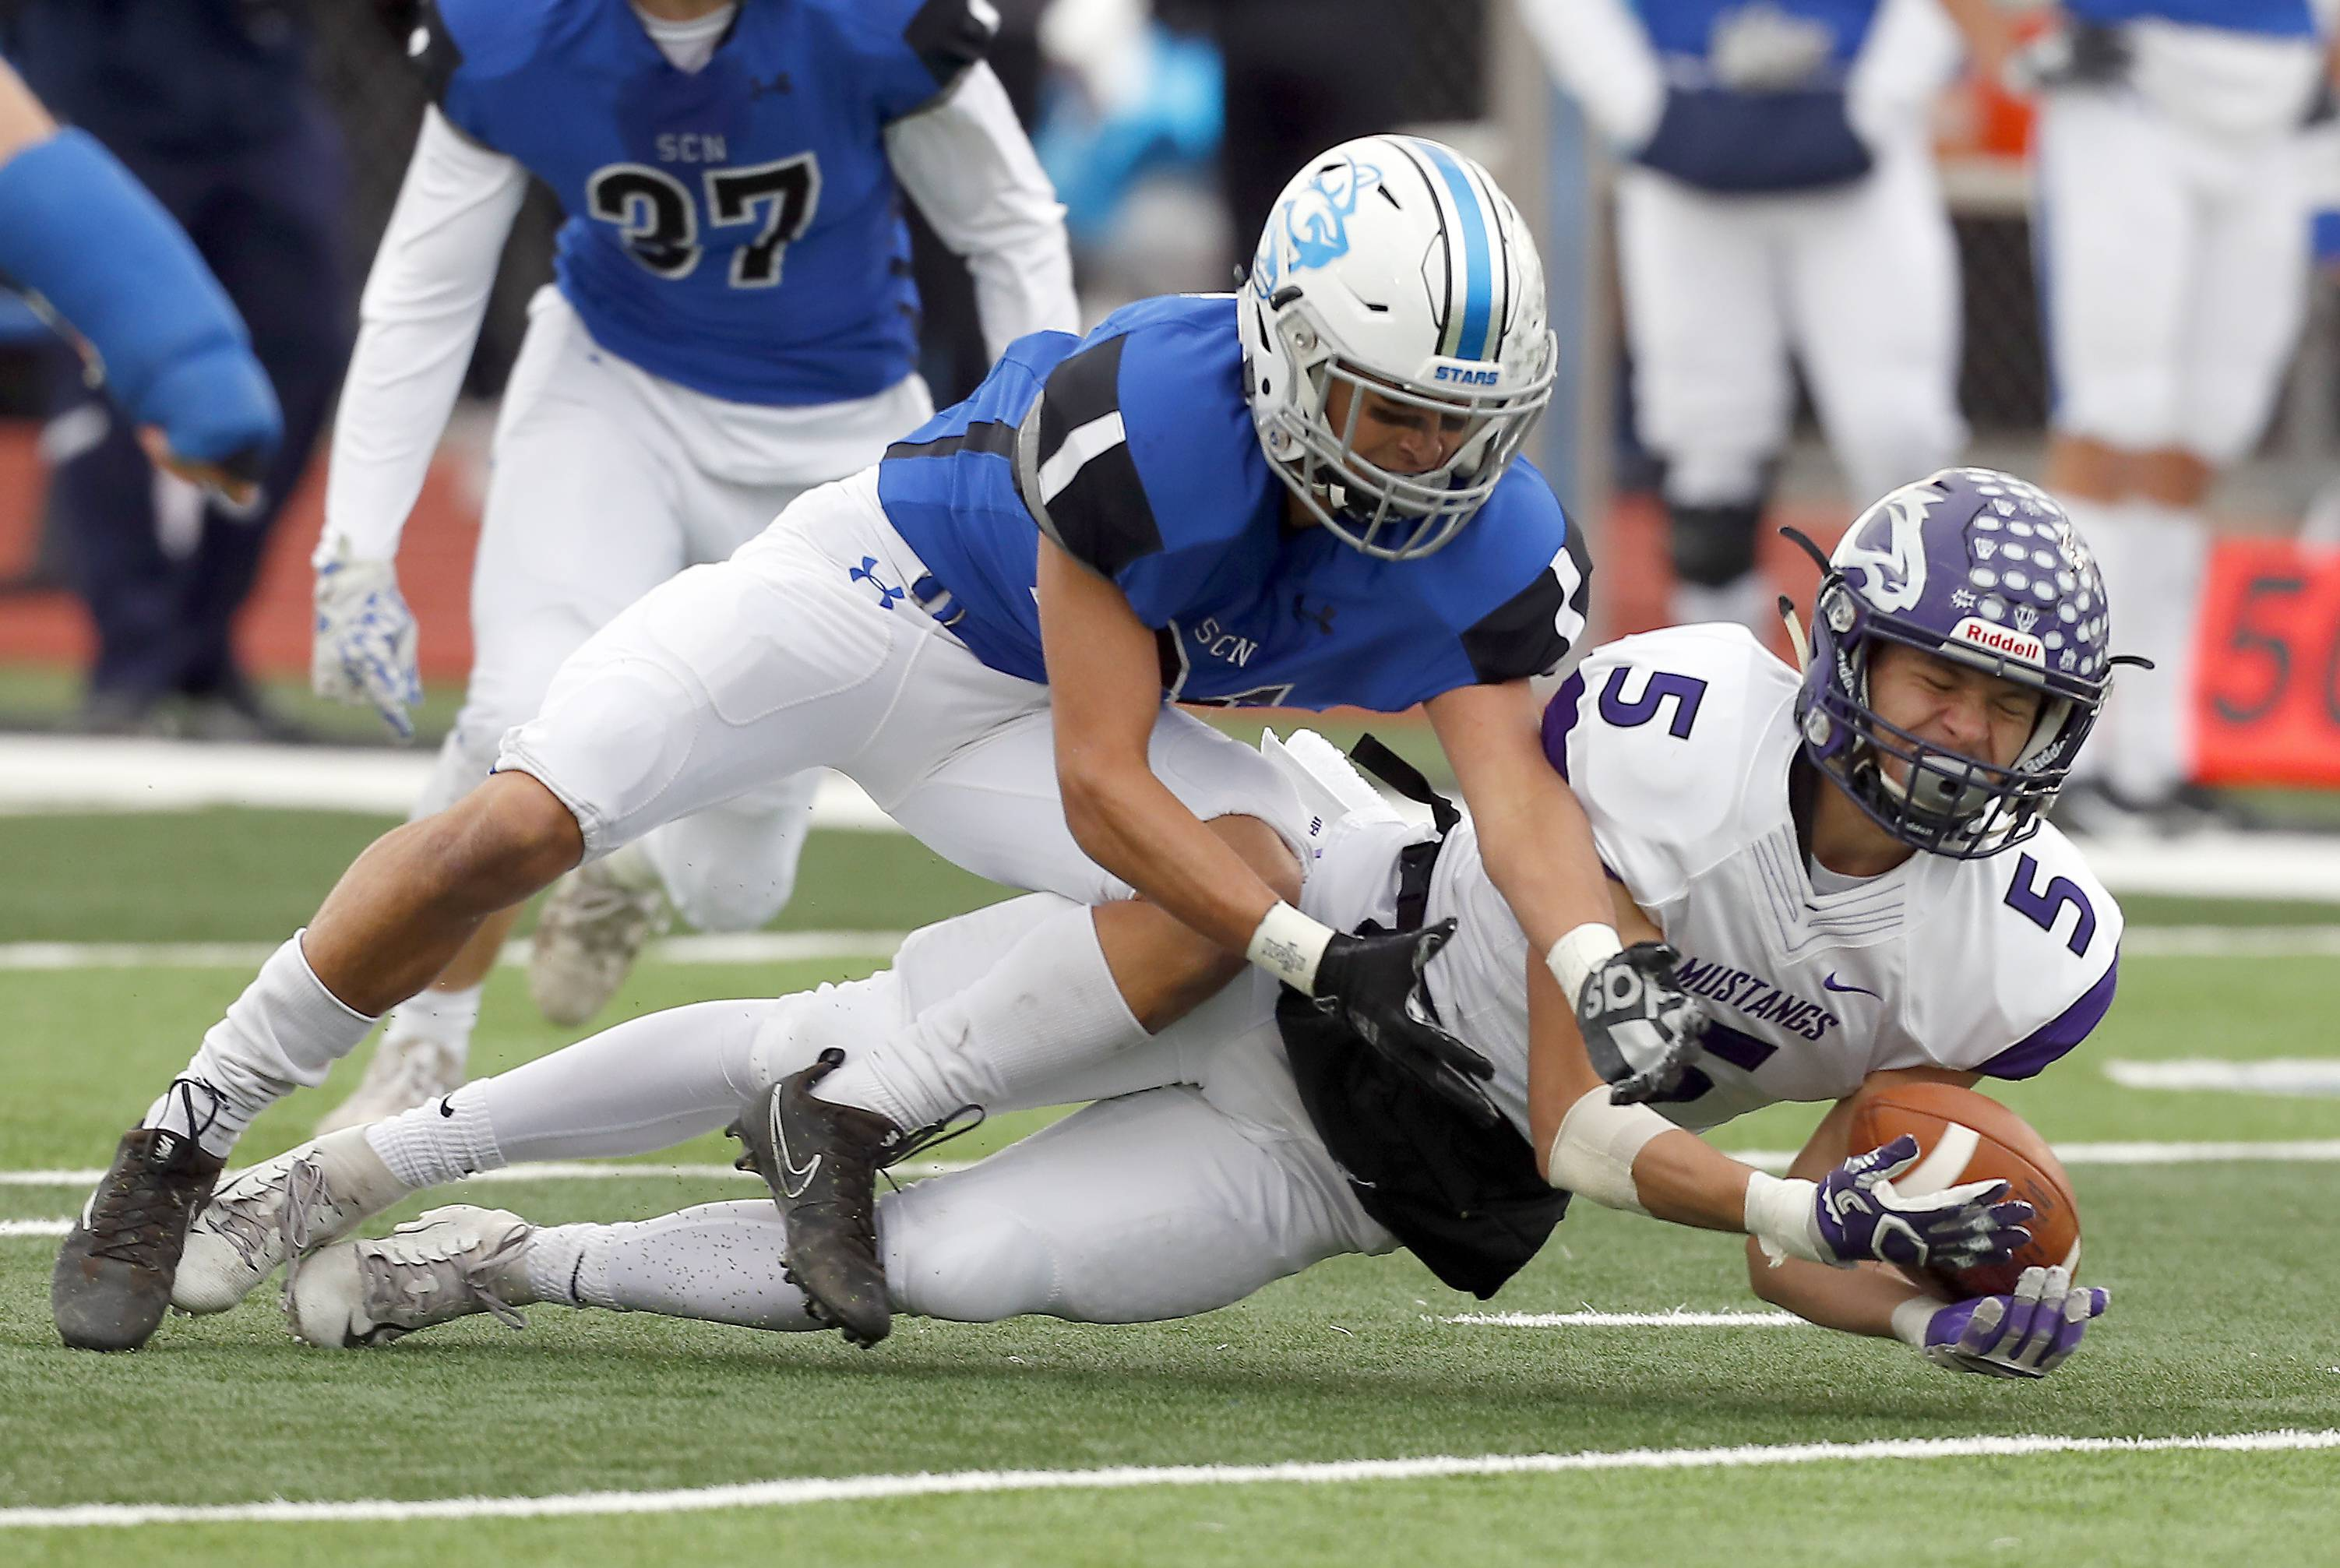 St. Charles North's Ethan Romero (21) tries to stop Rolling Meadows' Kacper Lesniak (5) from completing a catch Saturday during IHSA Class 7A playoff football in St. Charles.